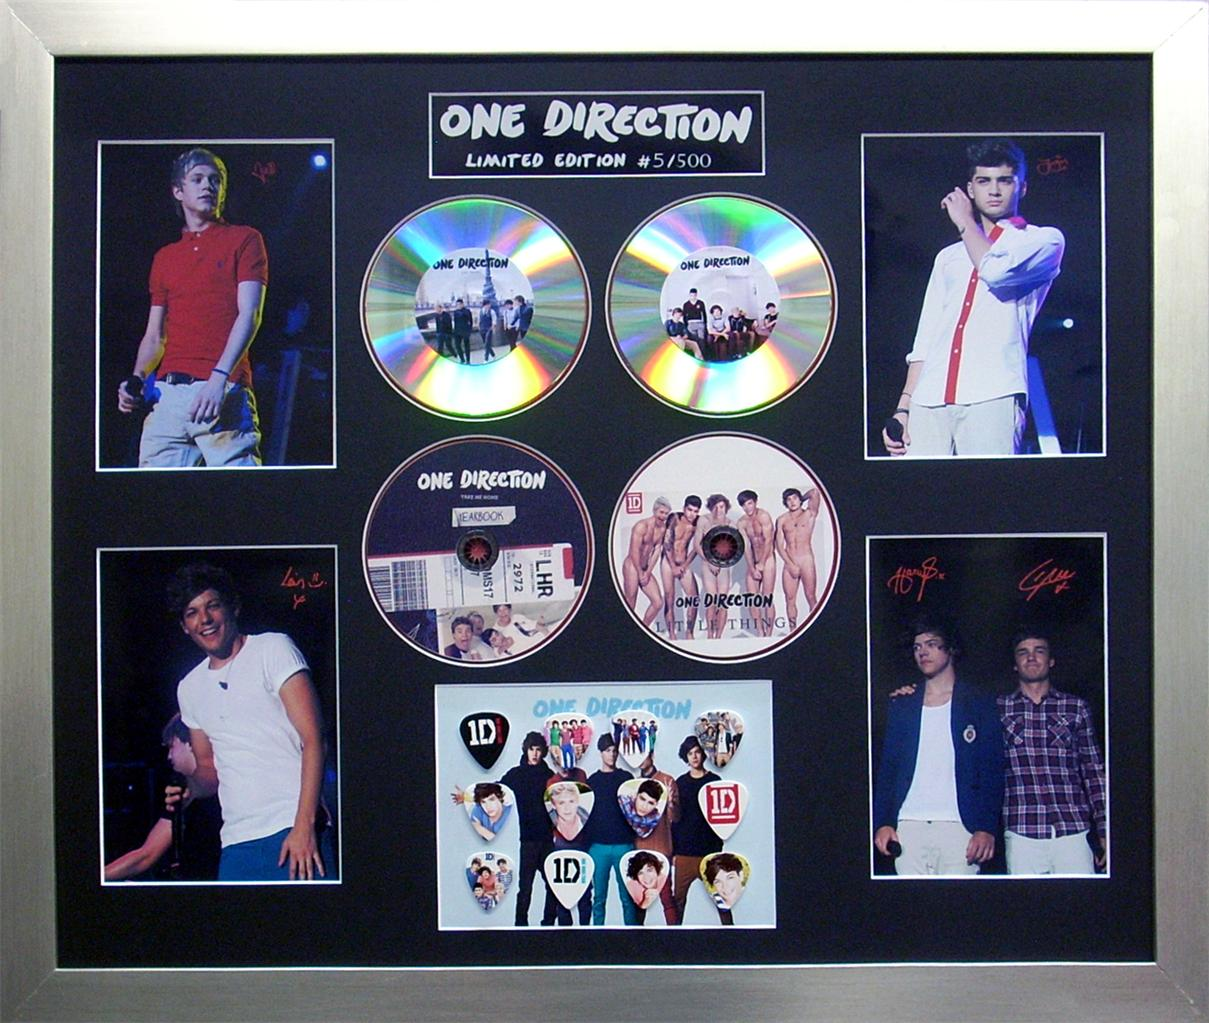 One-Direction-1D-Signed-Ltd-Ed-4-CD-Photo-Guitar-Pick-Memorabilia-Display-NEW